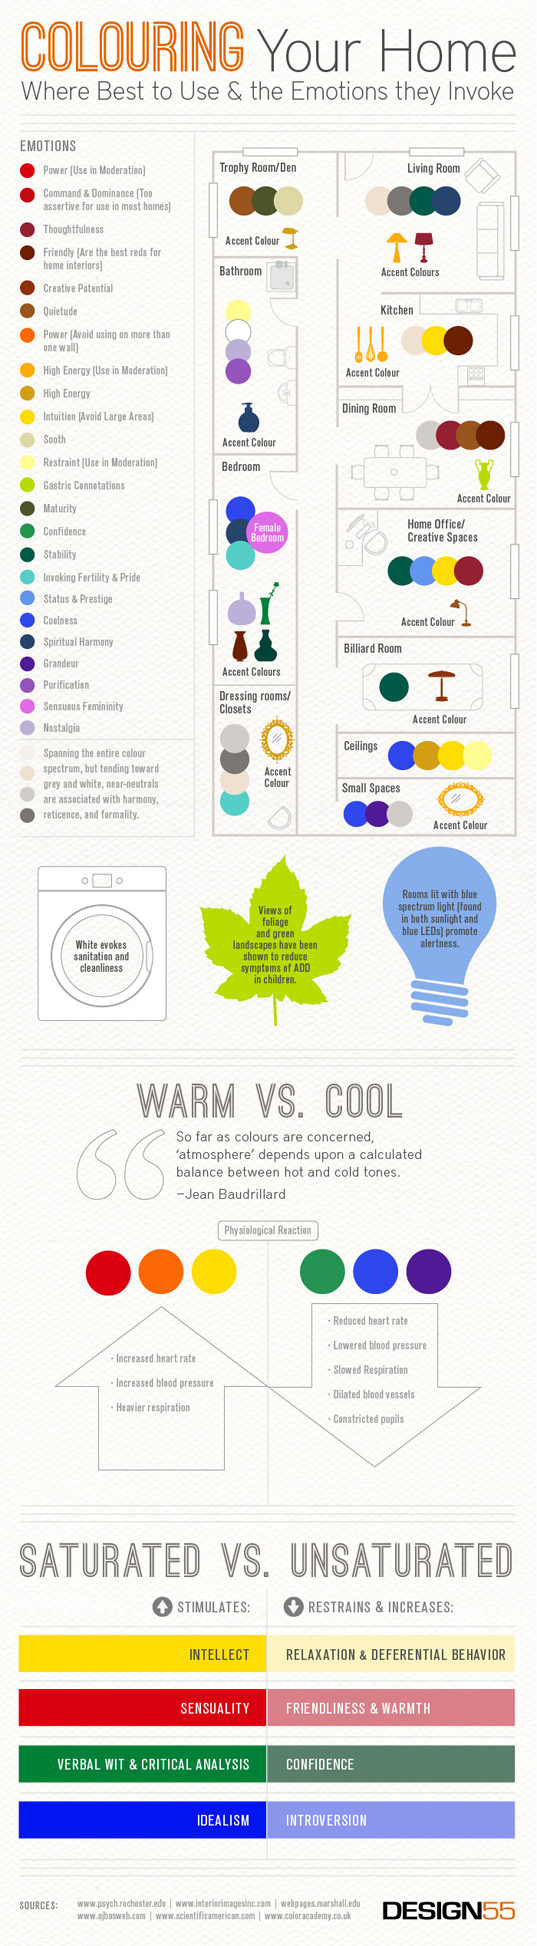 Colour Theory Interior Design infographic: how interior color choice can evoke moods in your